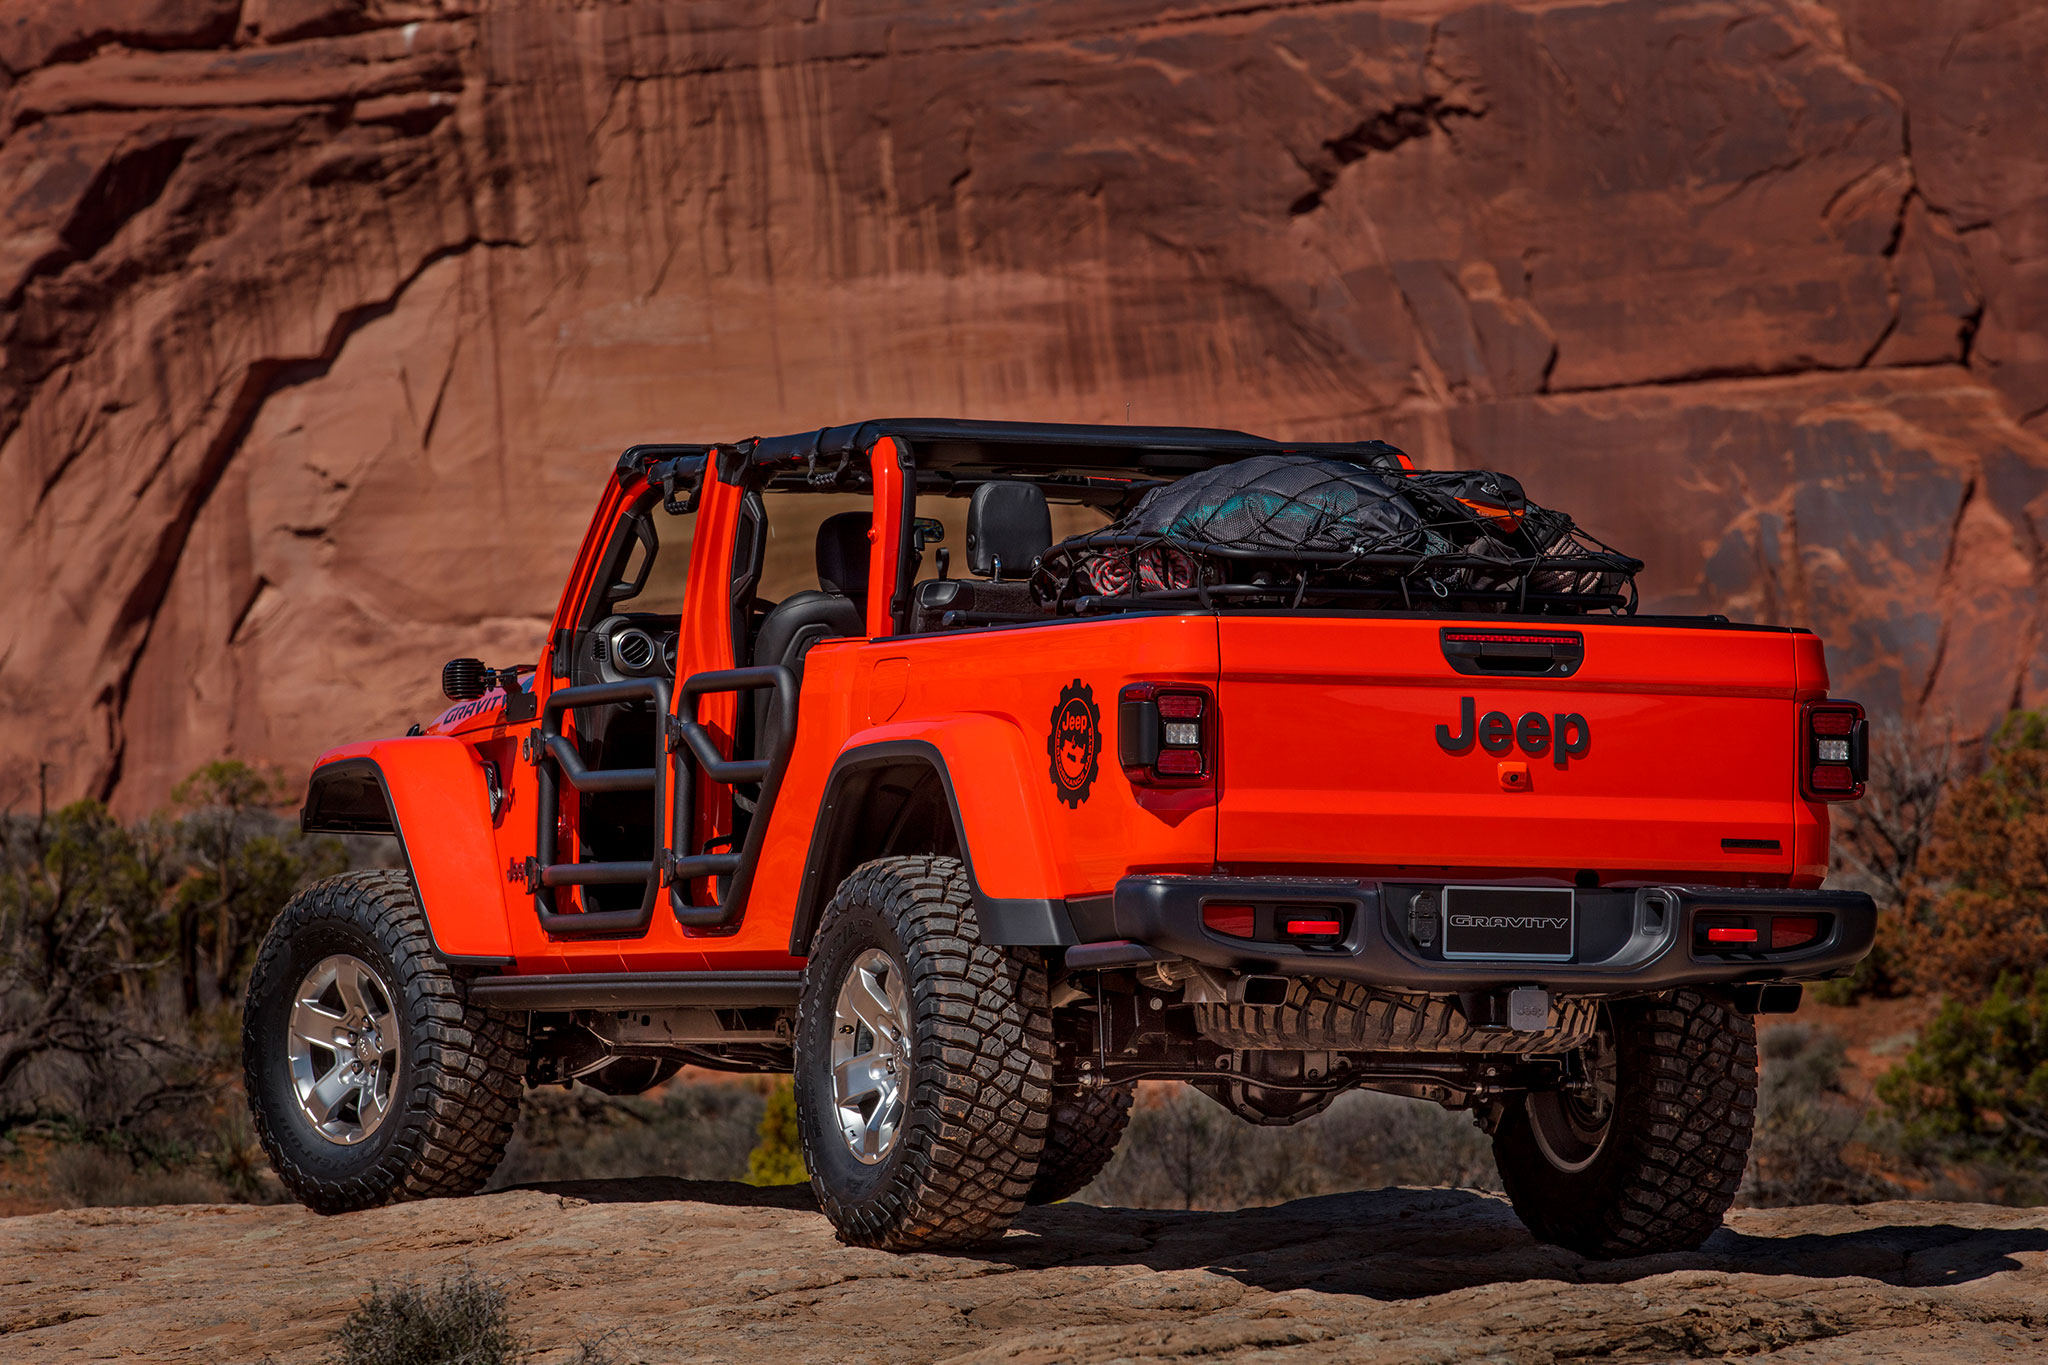 2019 Jeep Gladiator Gravity ouvert à tous les vents - Moab Easter Jeep Safari.